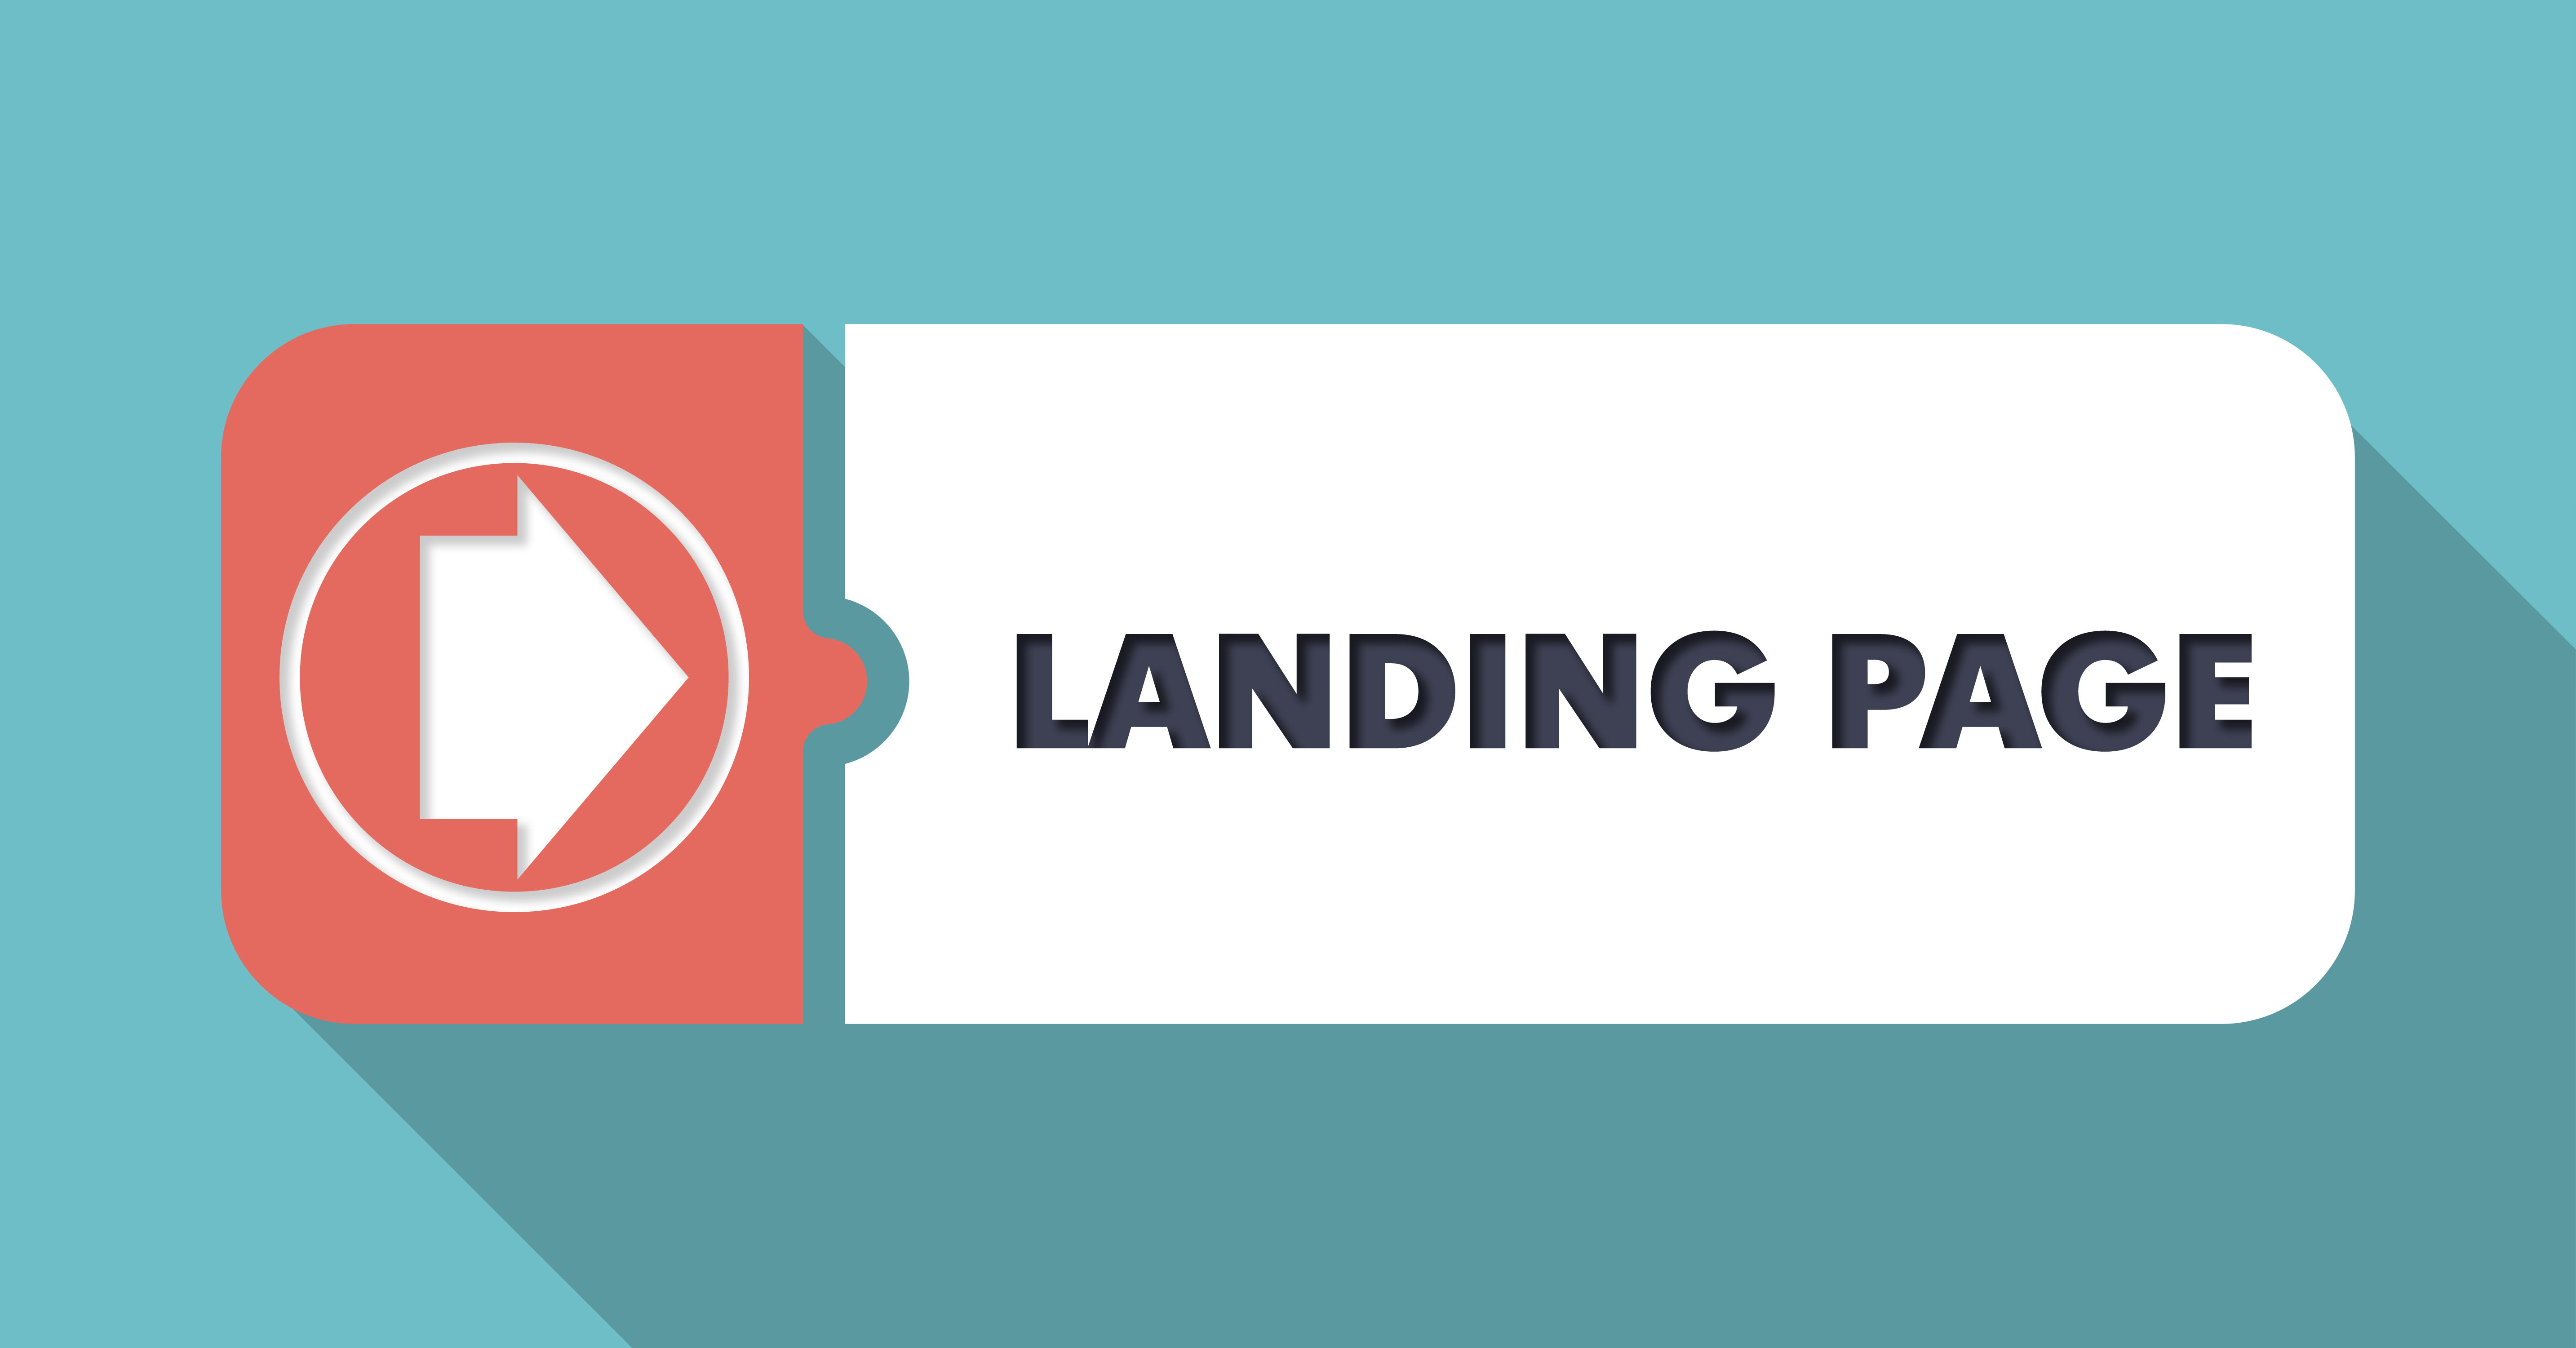 Landing Page on Blue in Flat Design.